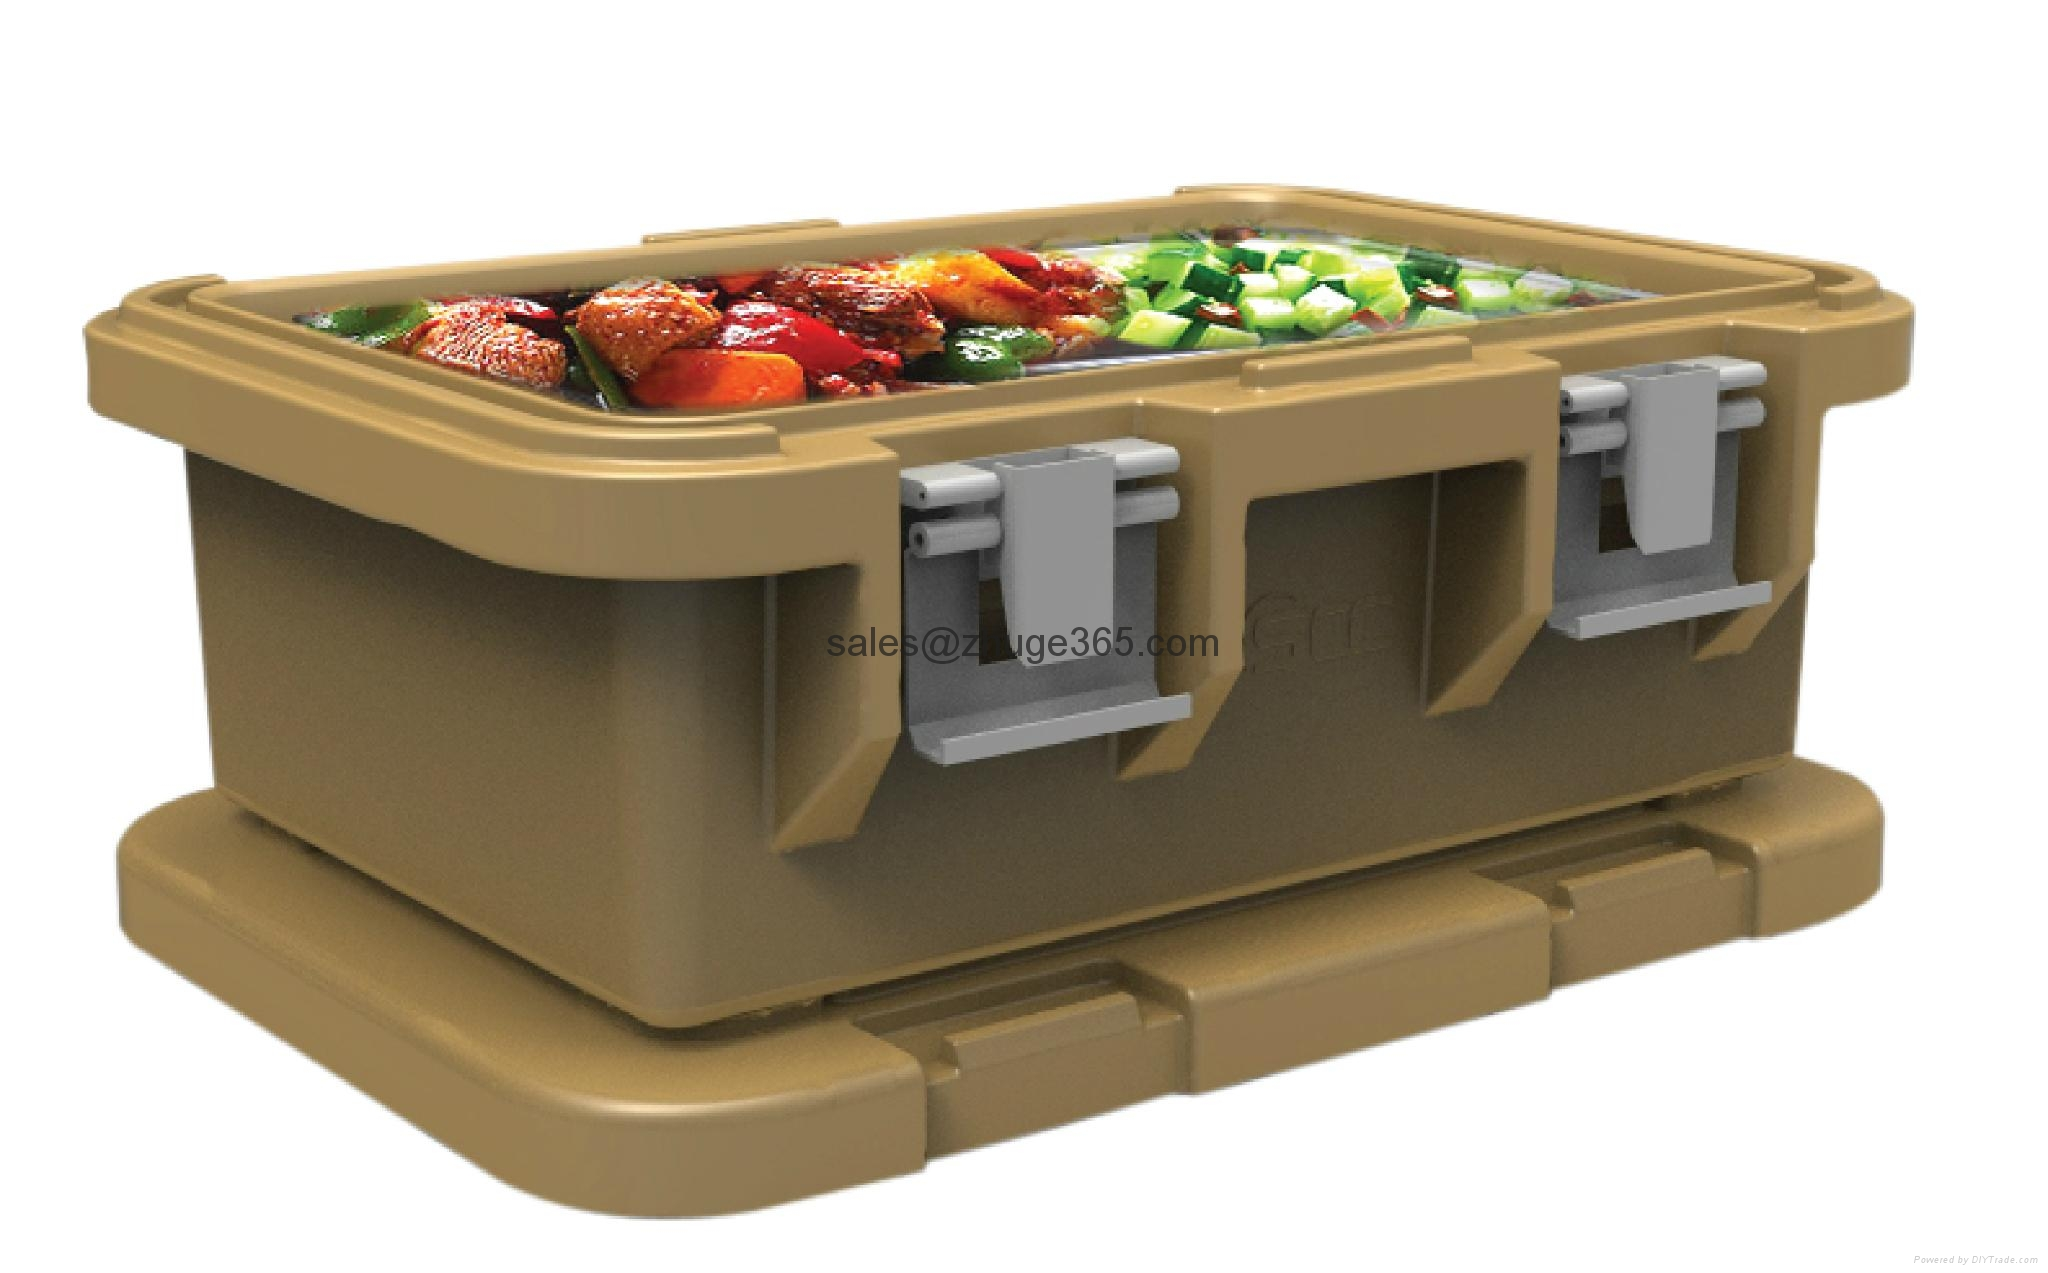 Top-load 24Liter Insulated Food Pan Carrier - SB2-F24